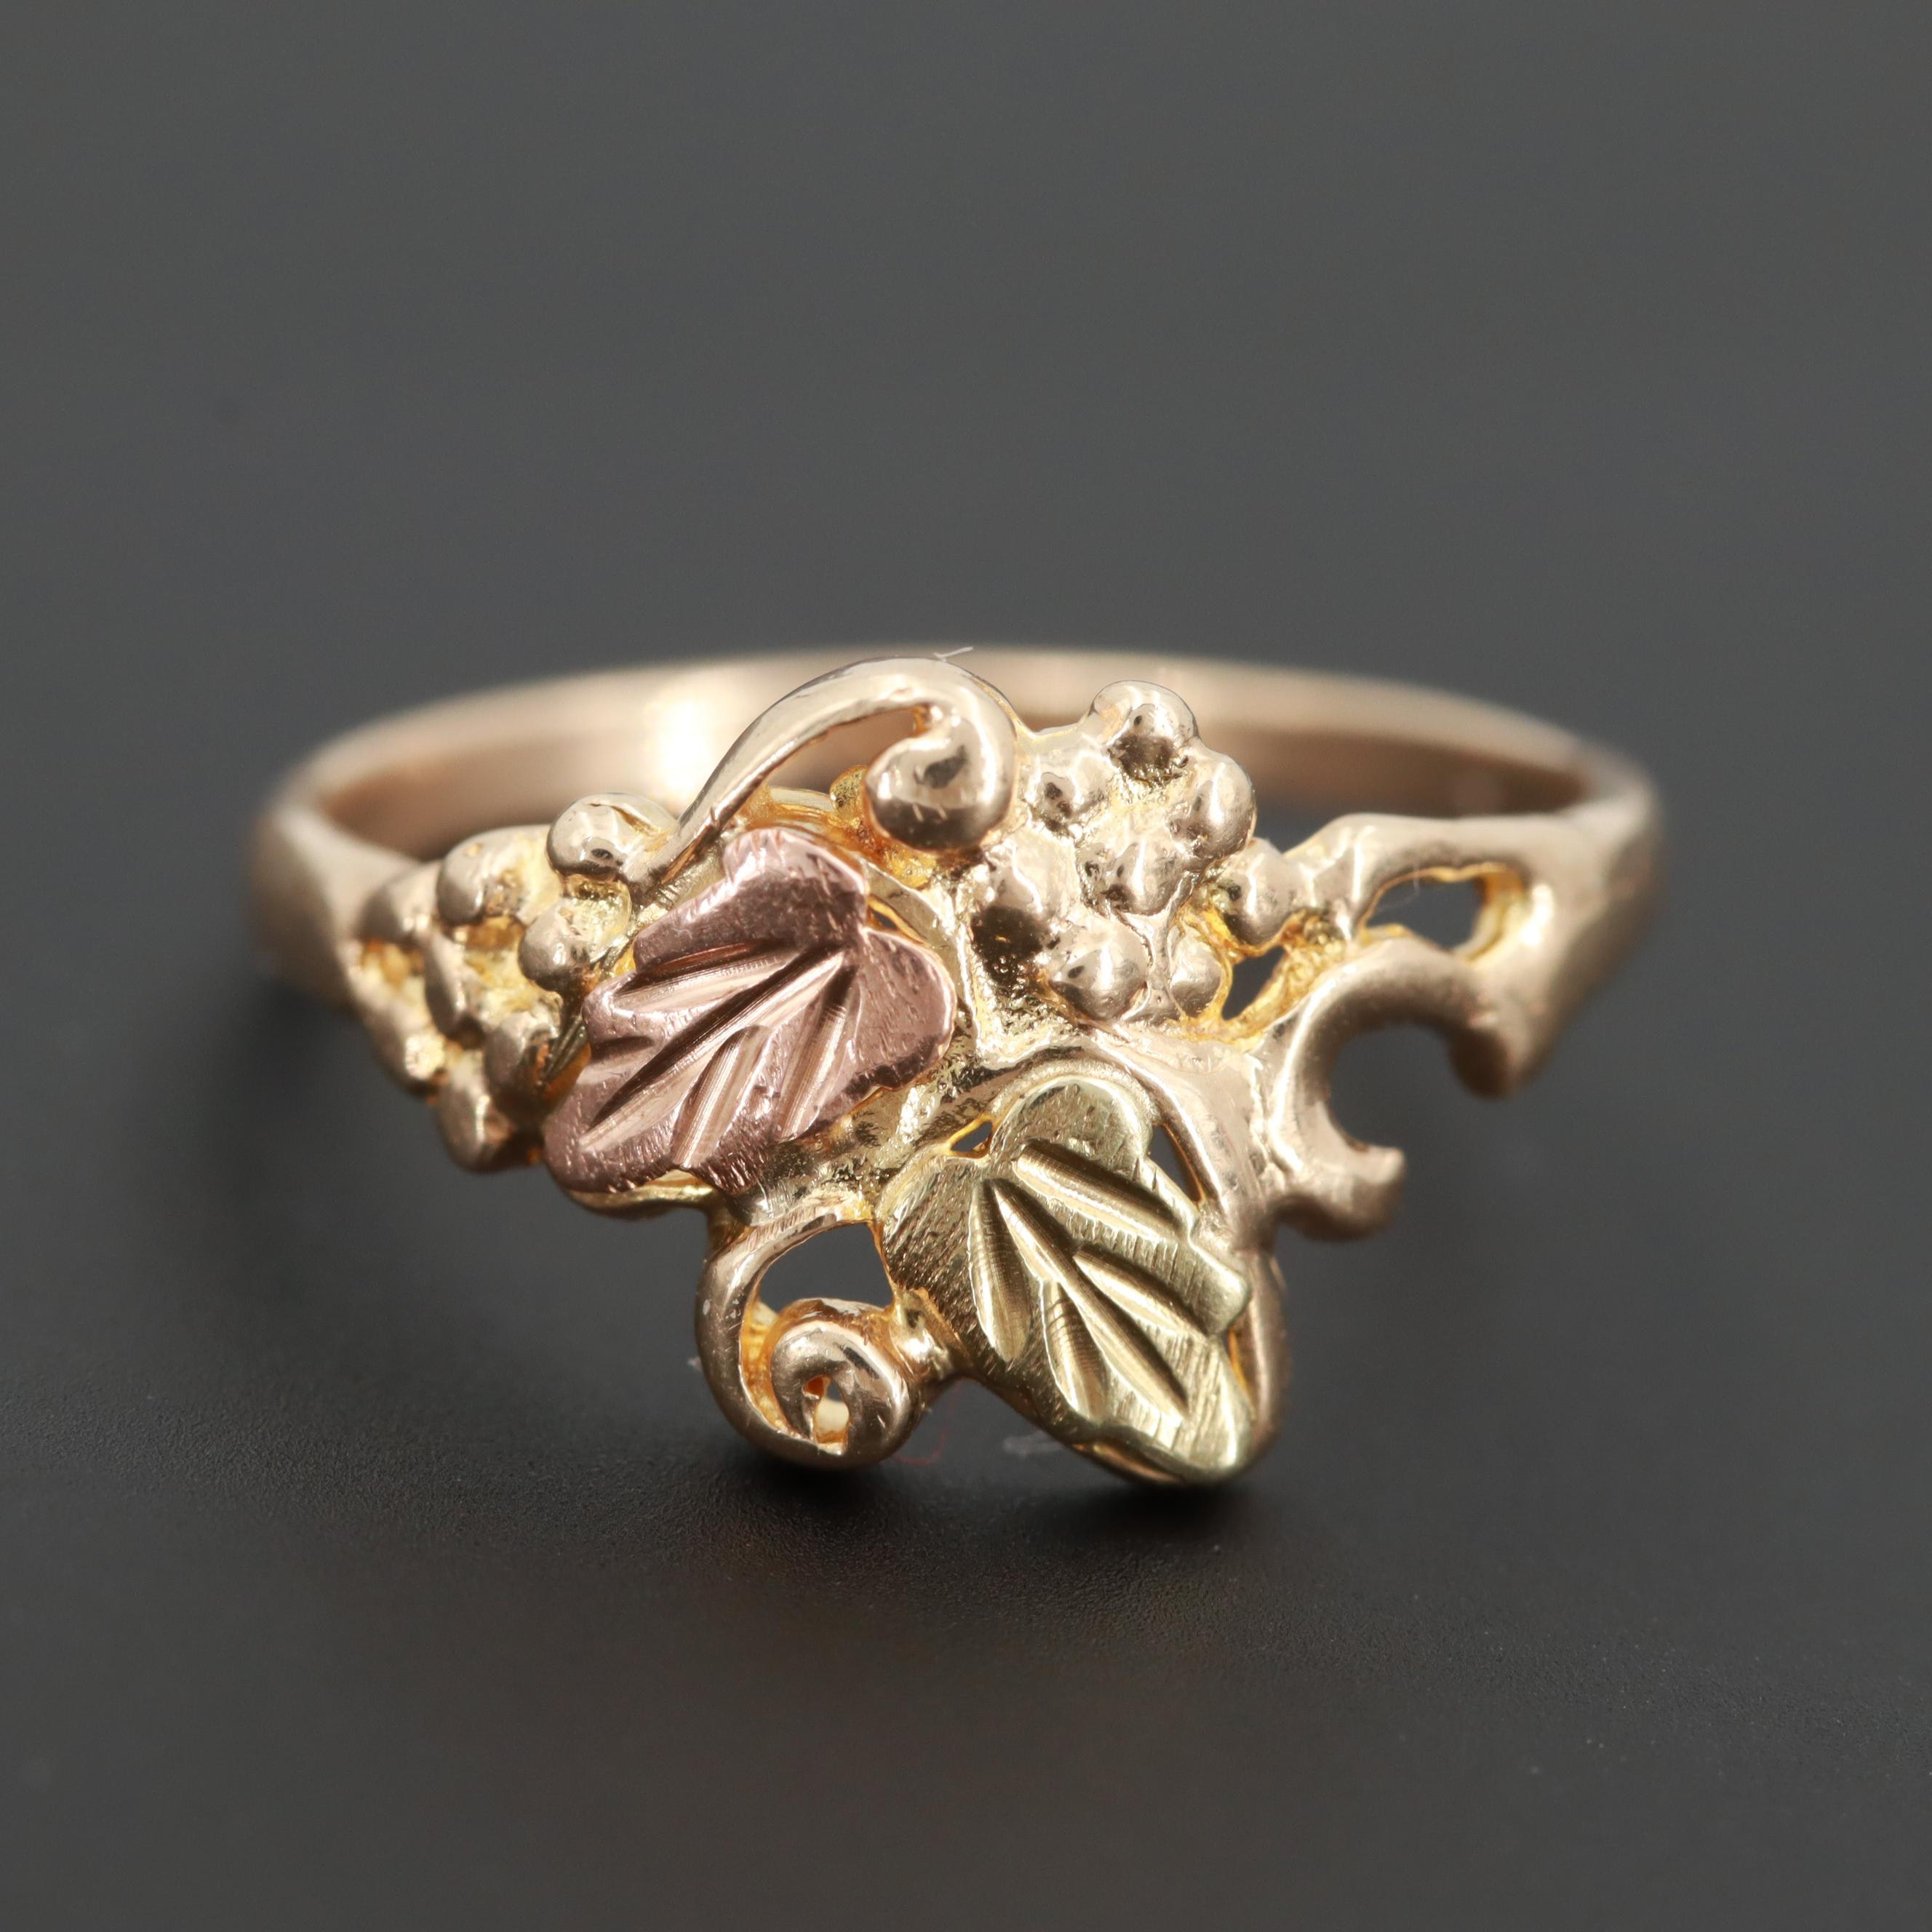 10K Yellow Gold Ring with Rose Gold Accents